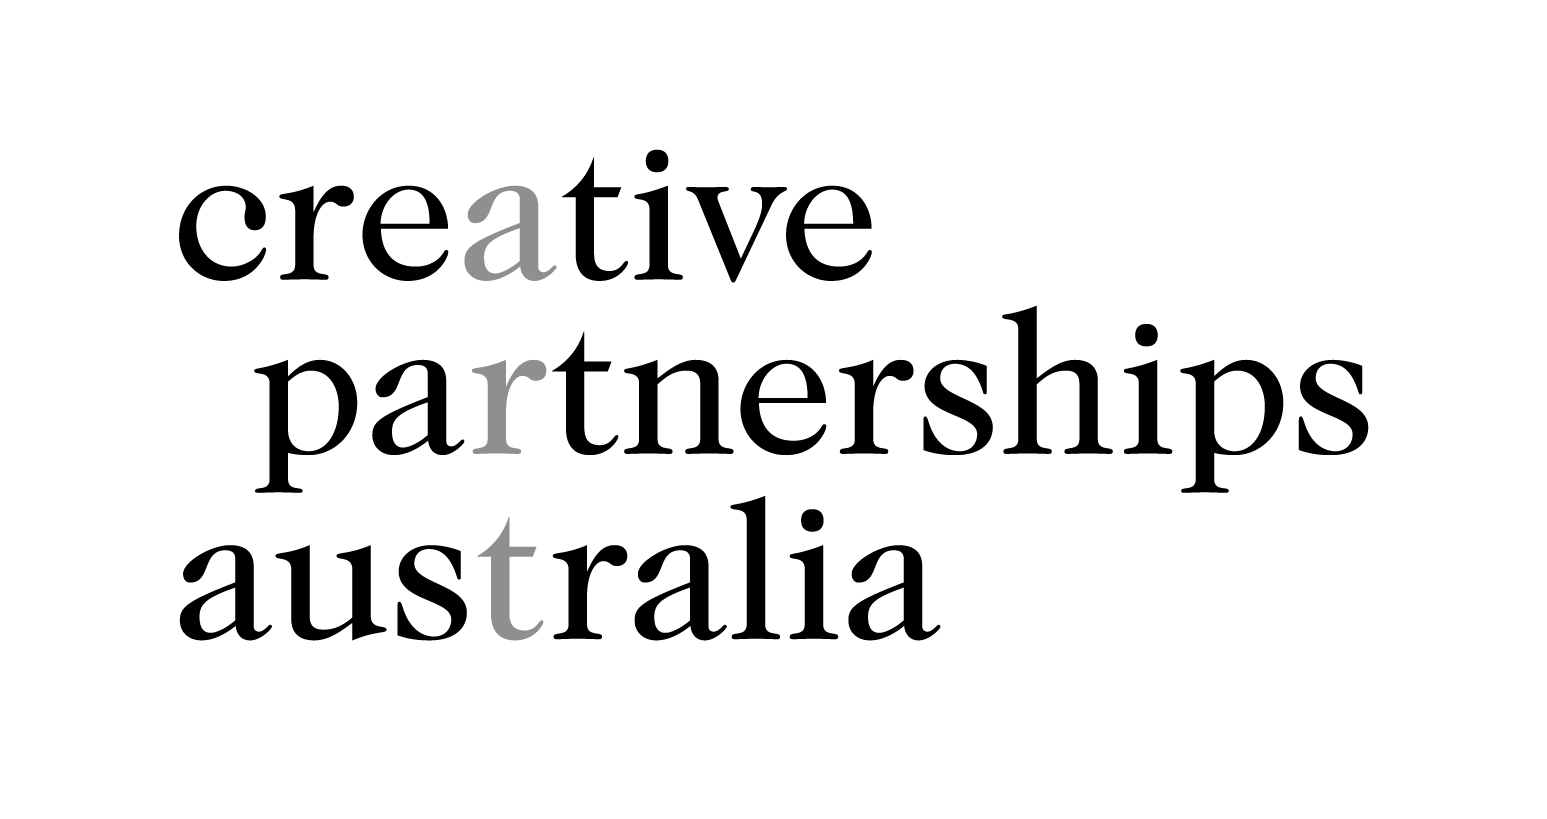 creative_partnerships_australia_greyscale.jpg